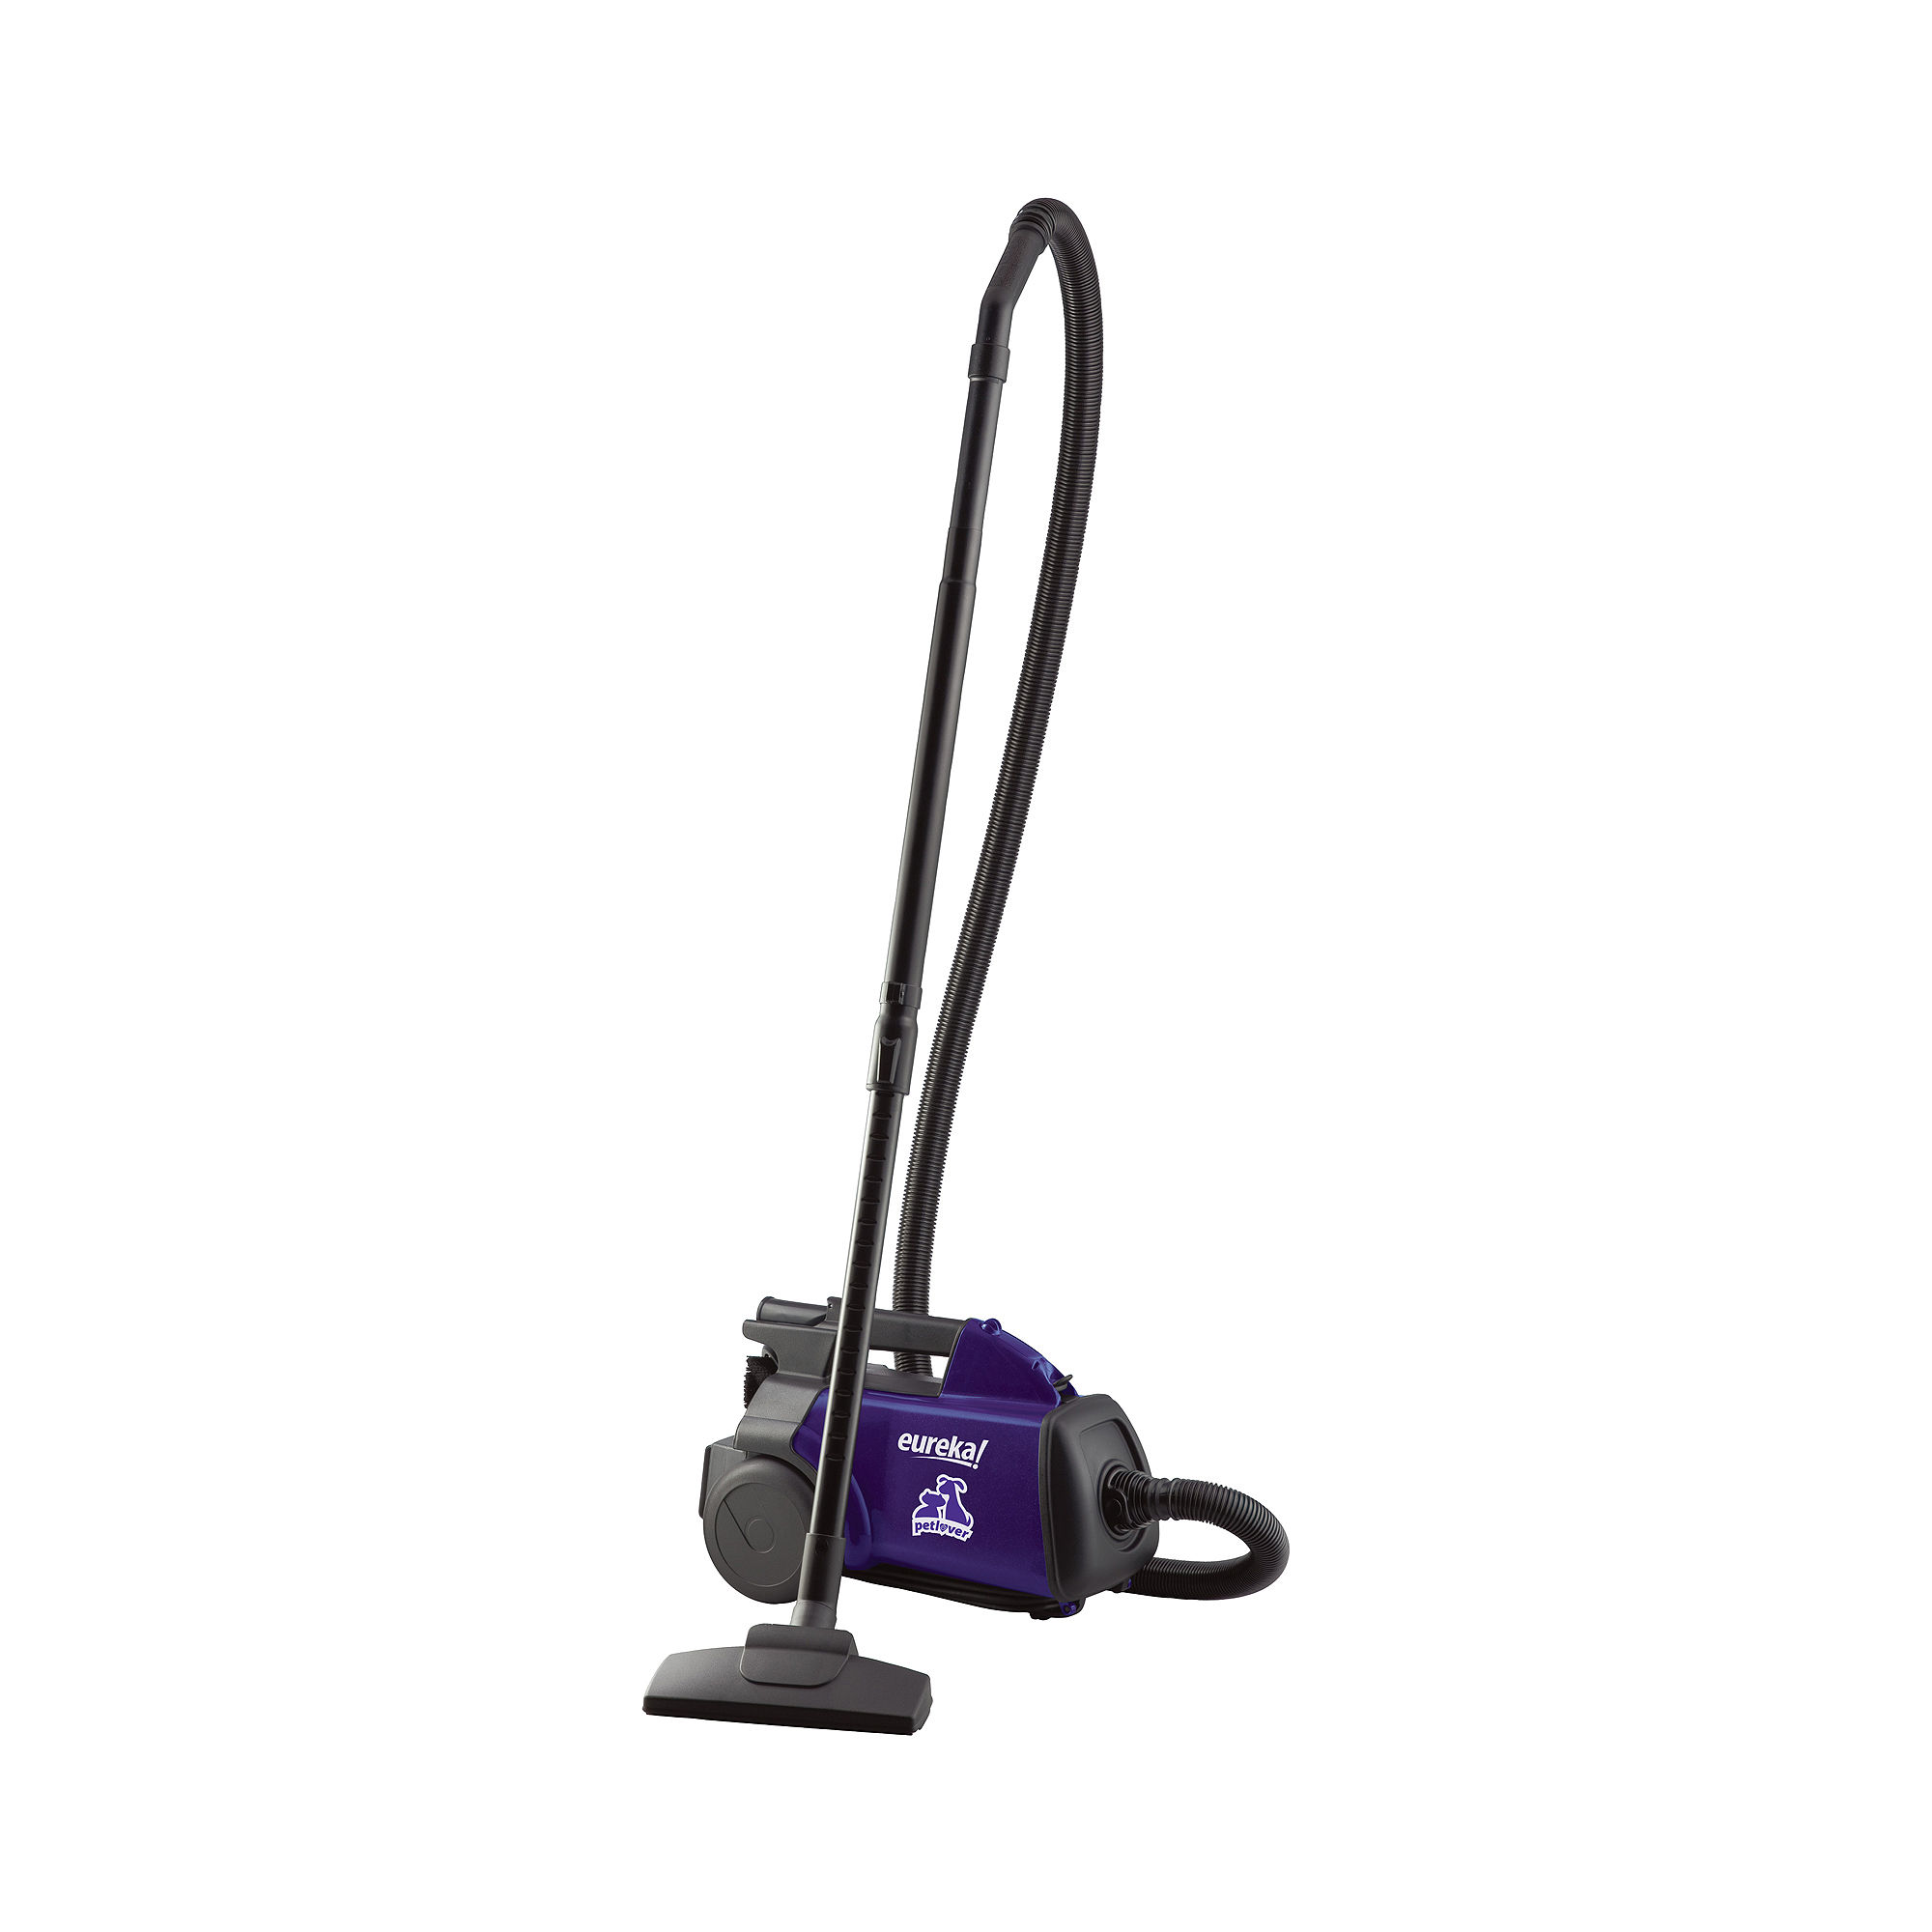 Eureka Mighty Mite Pet Lover Bagged Canister Vacuum Cleaner